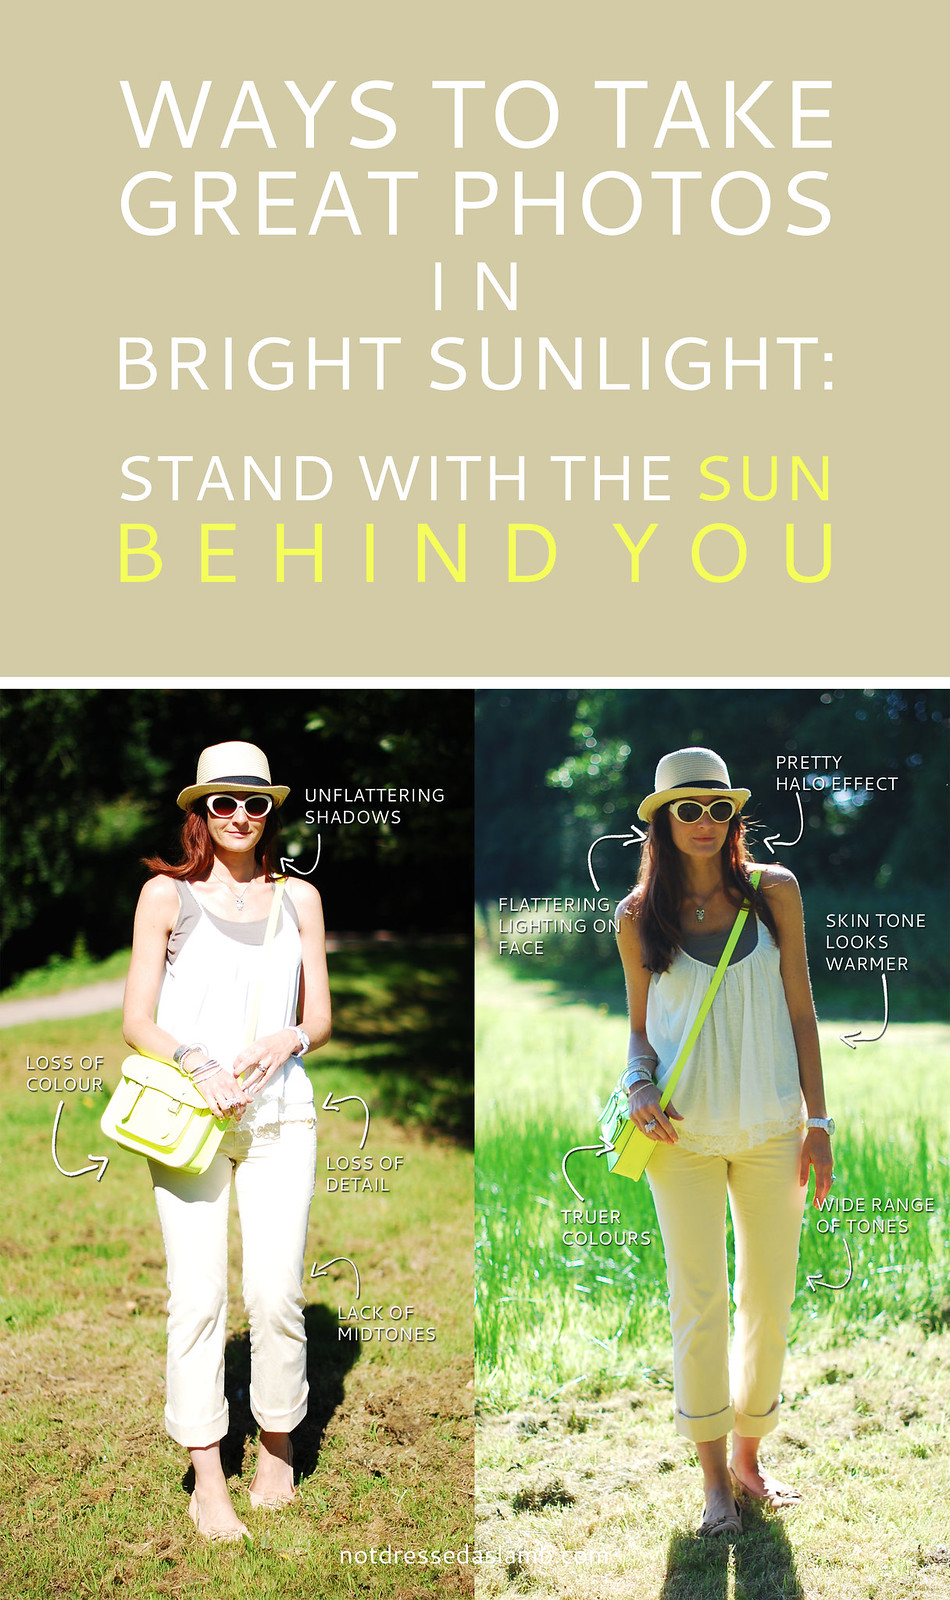 Photo Tips | Ways to Take the Best OOTD Photographs in Bright Sunlight: Stand with the sun behind you